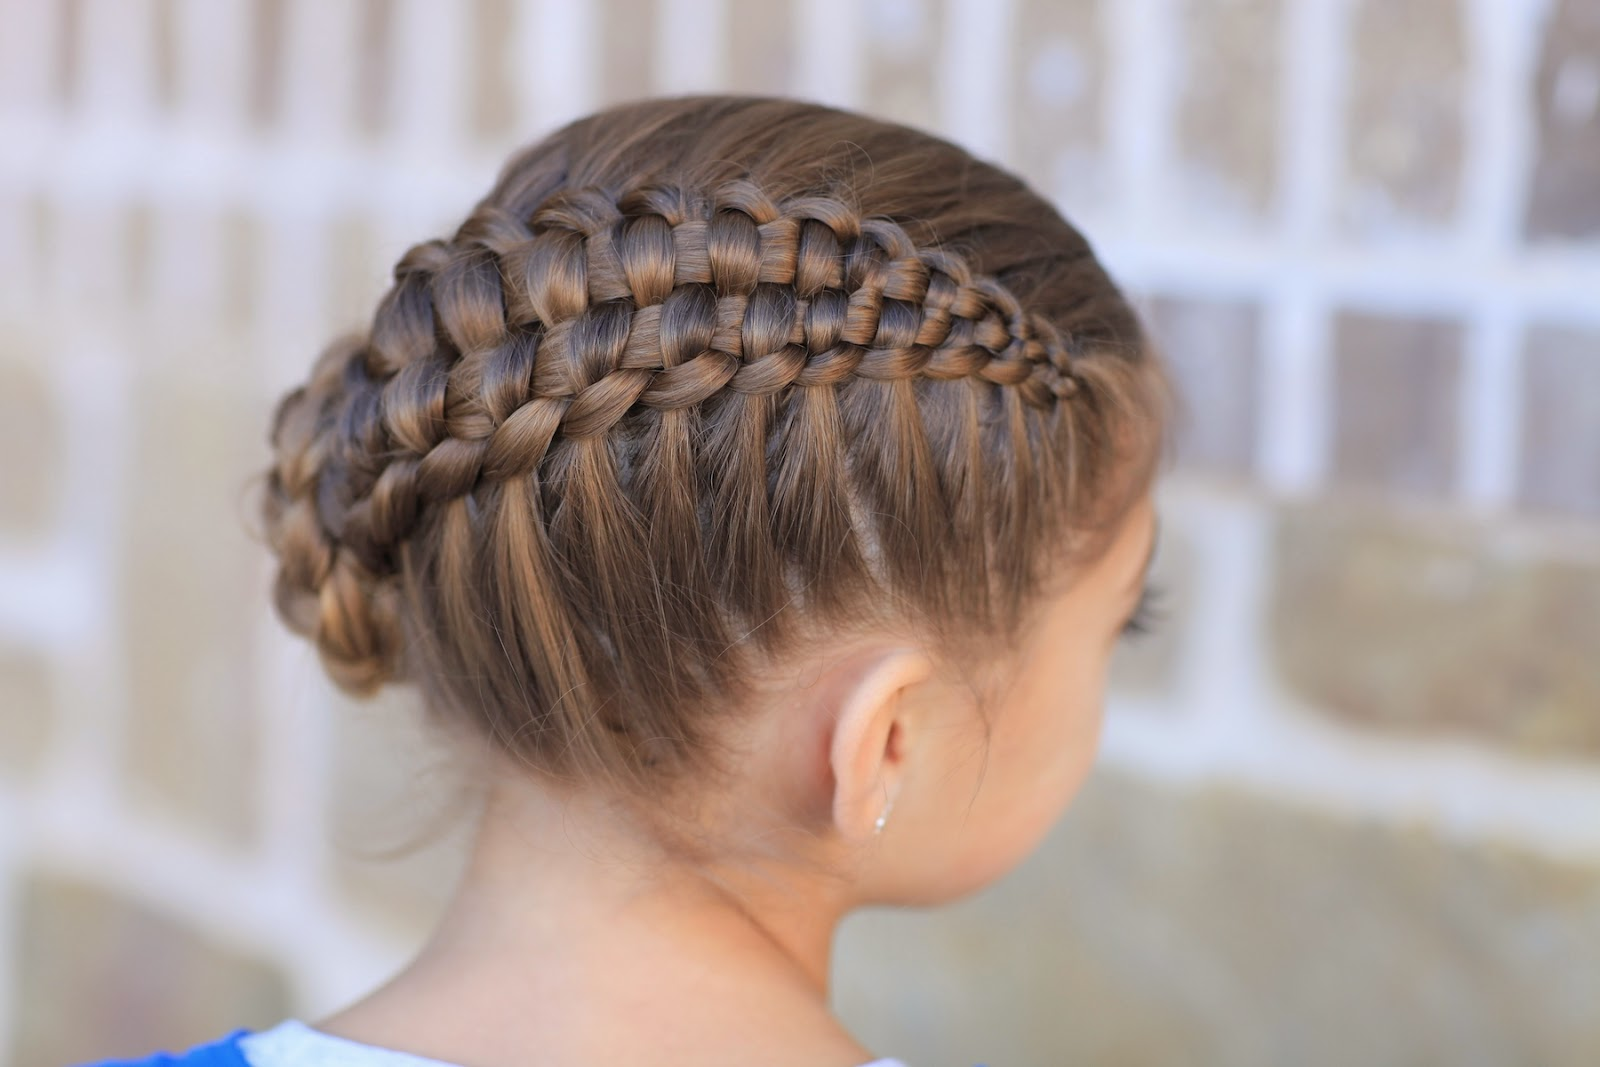 pretty girl hairstyles Short  for Young Kids Girls Short  Trends